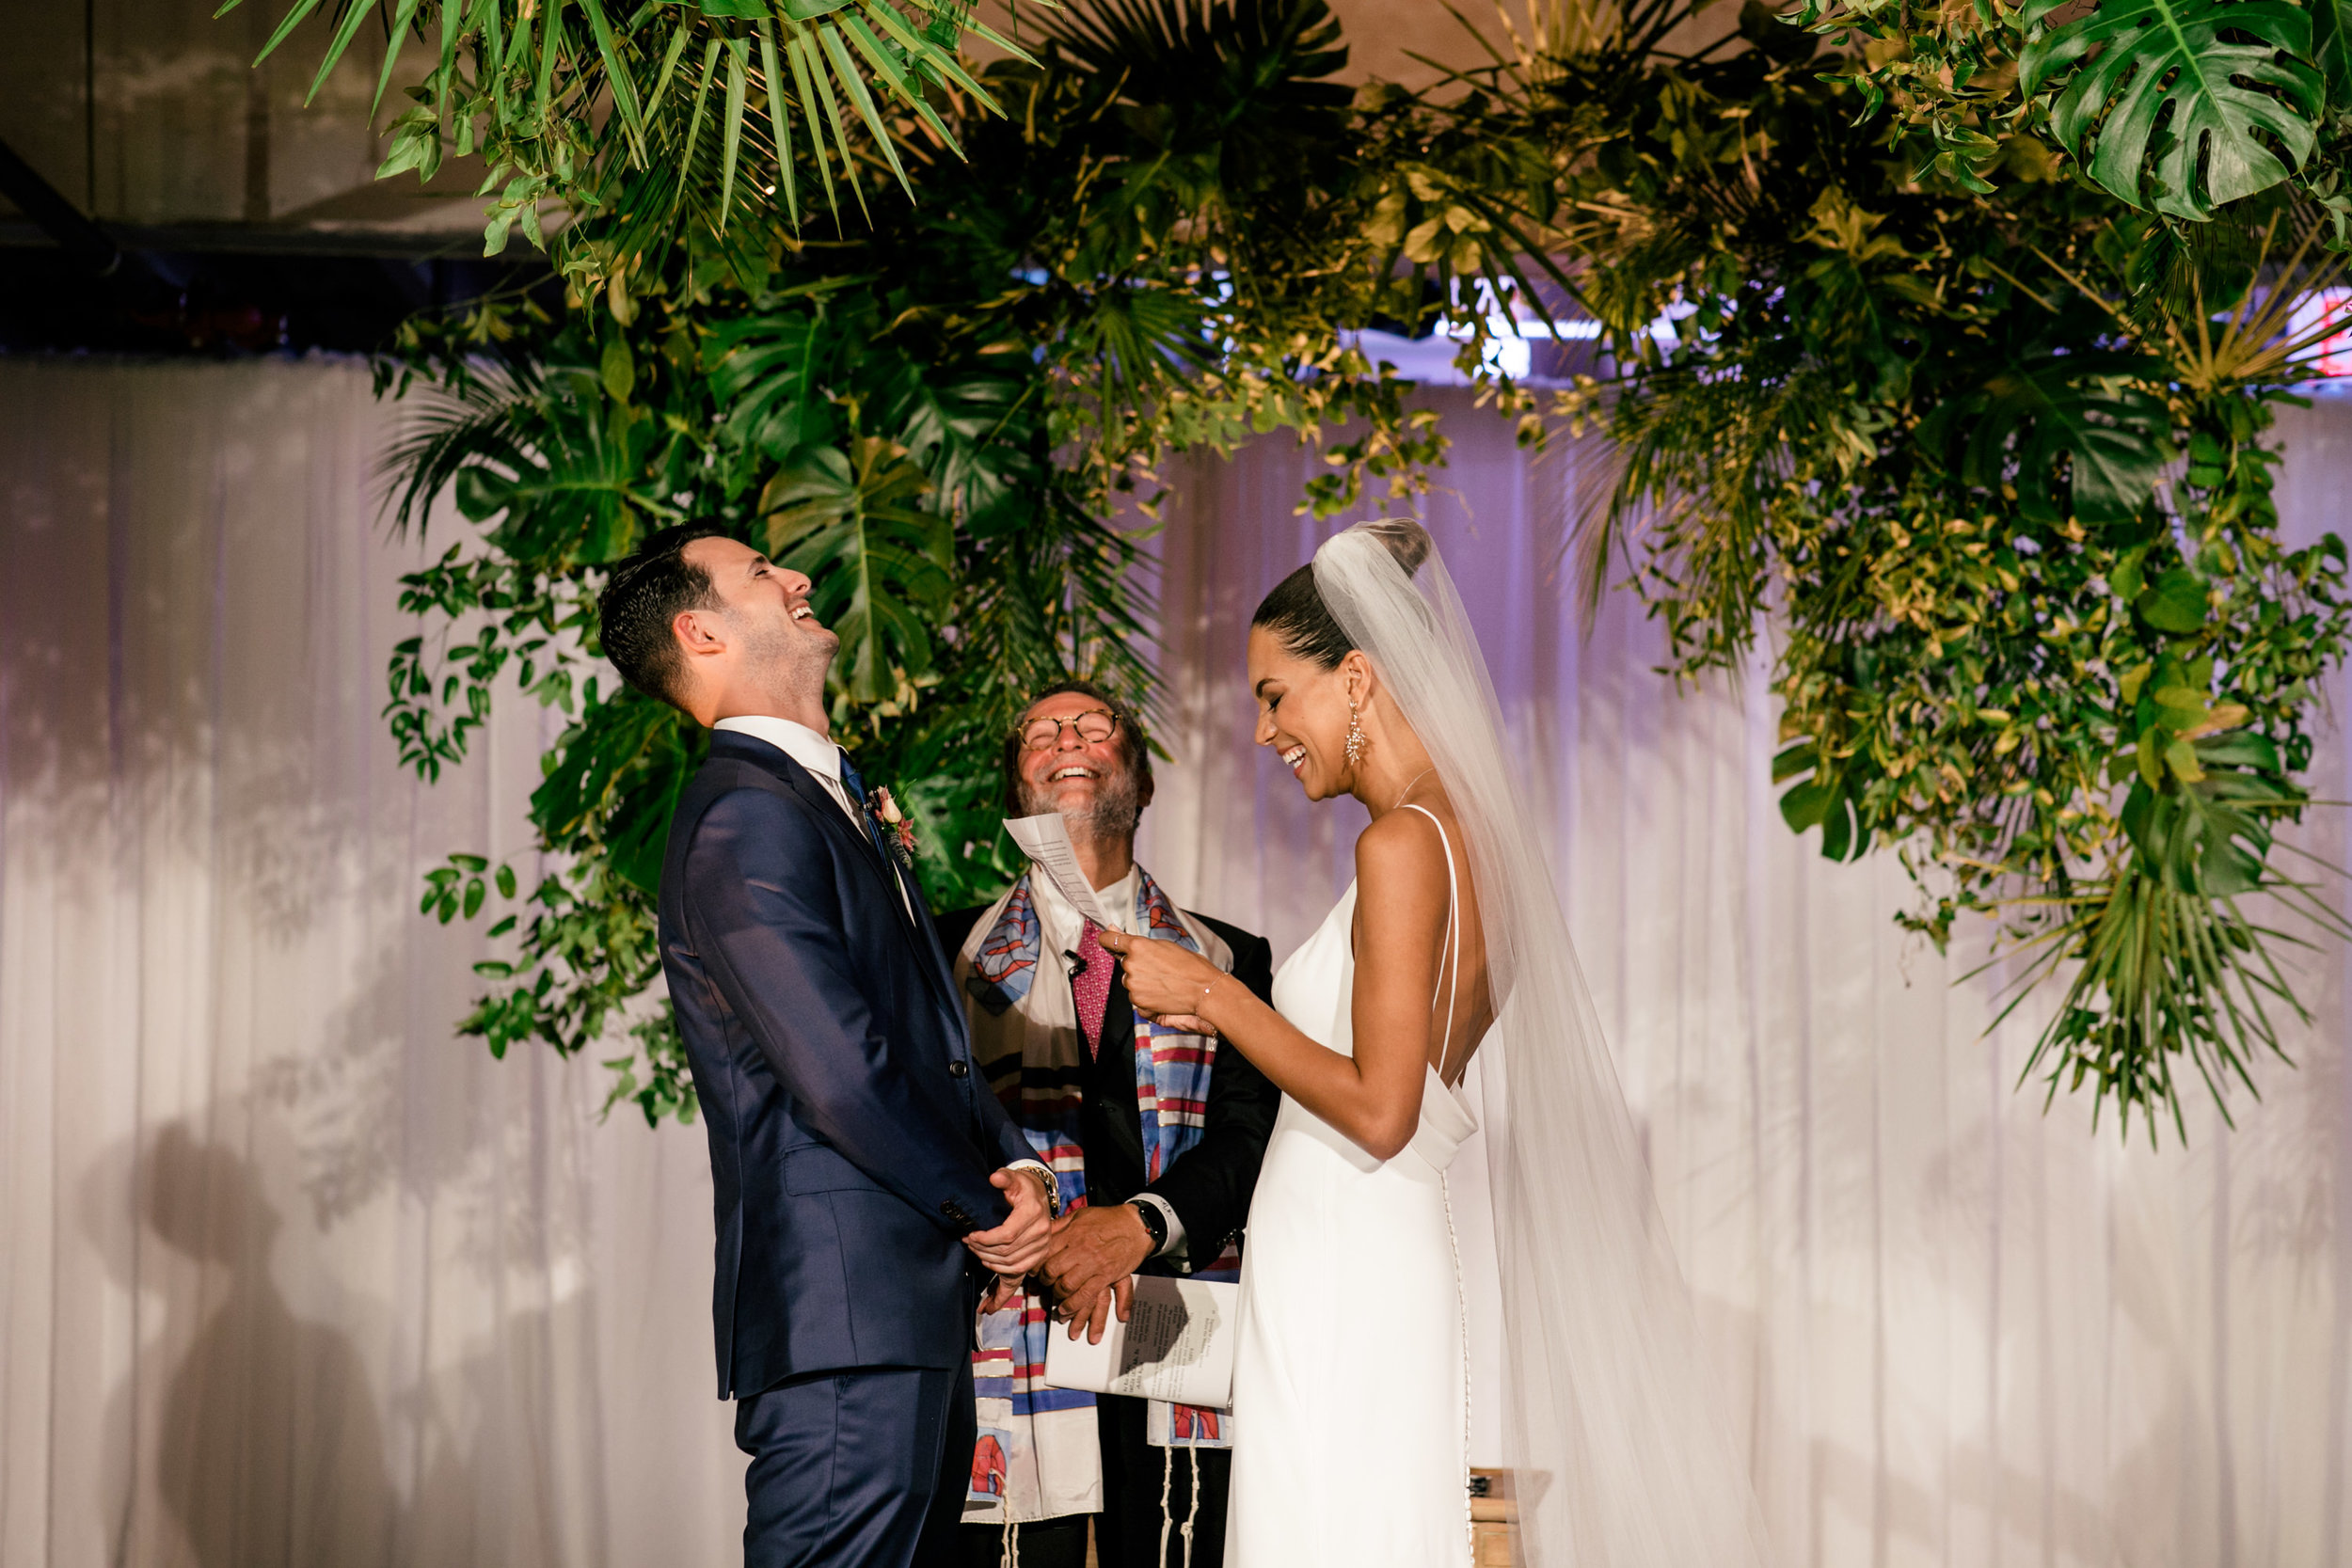 photography-wedding-weddings-natural-candid-dock 5 dc-washington dc-philadelphia-mixed race-editorial-modern-fine-art-056.JPG